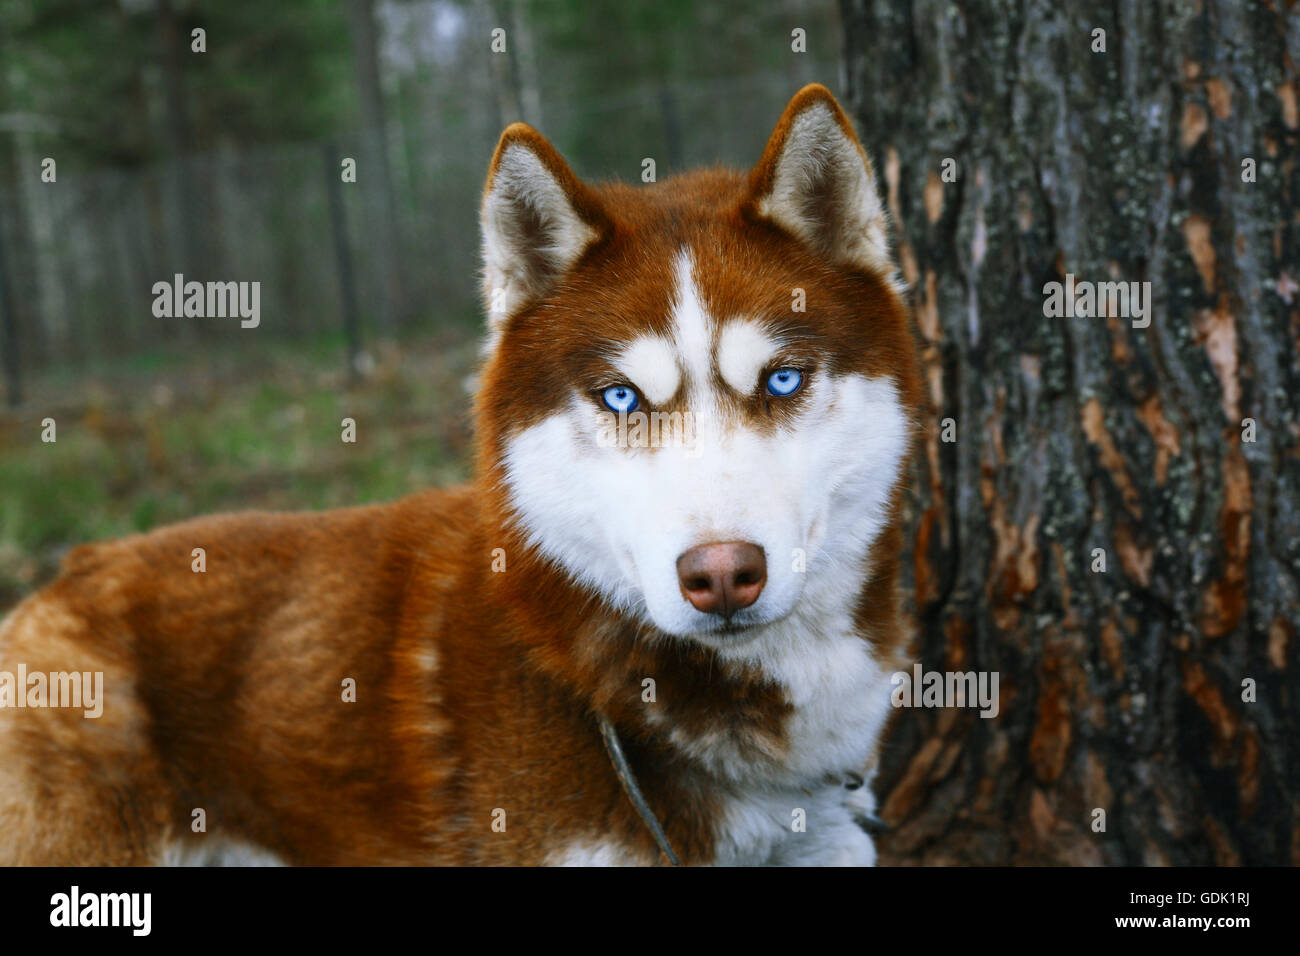 Red Husky - Dog with blue eyes. - Stock Image